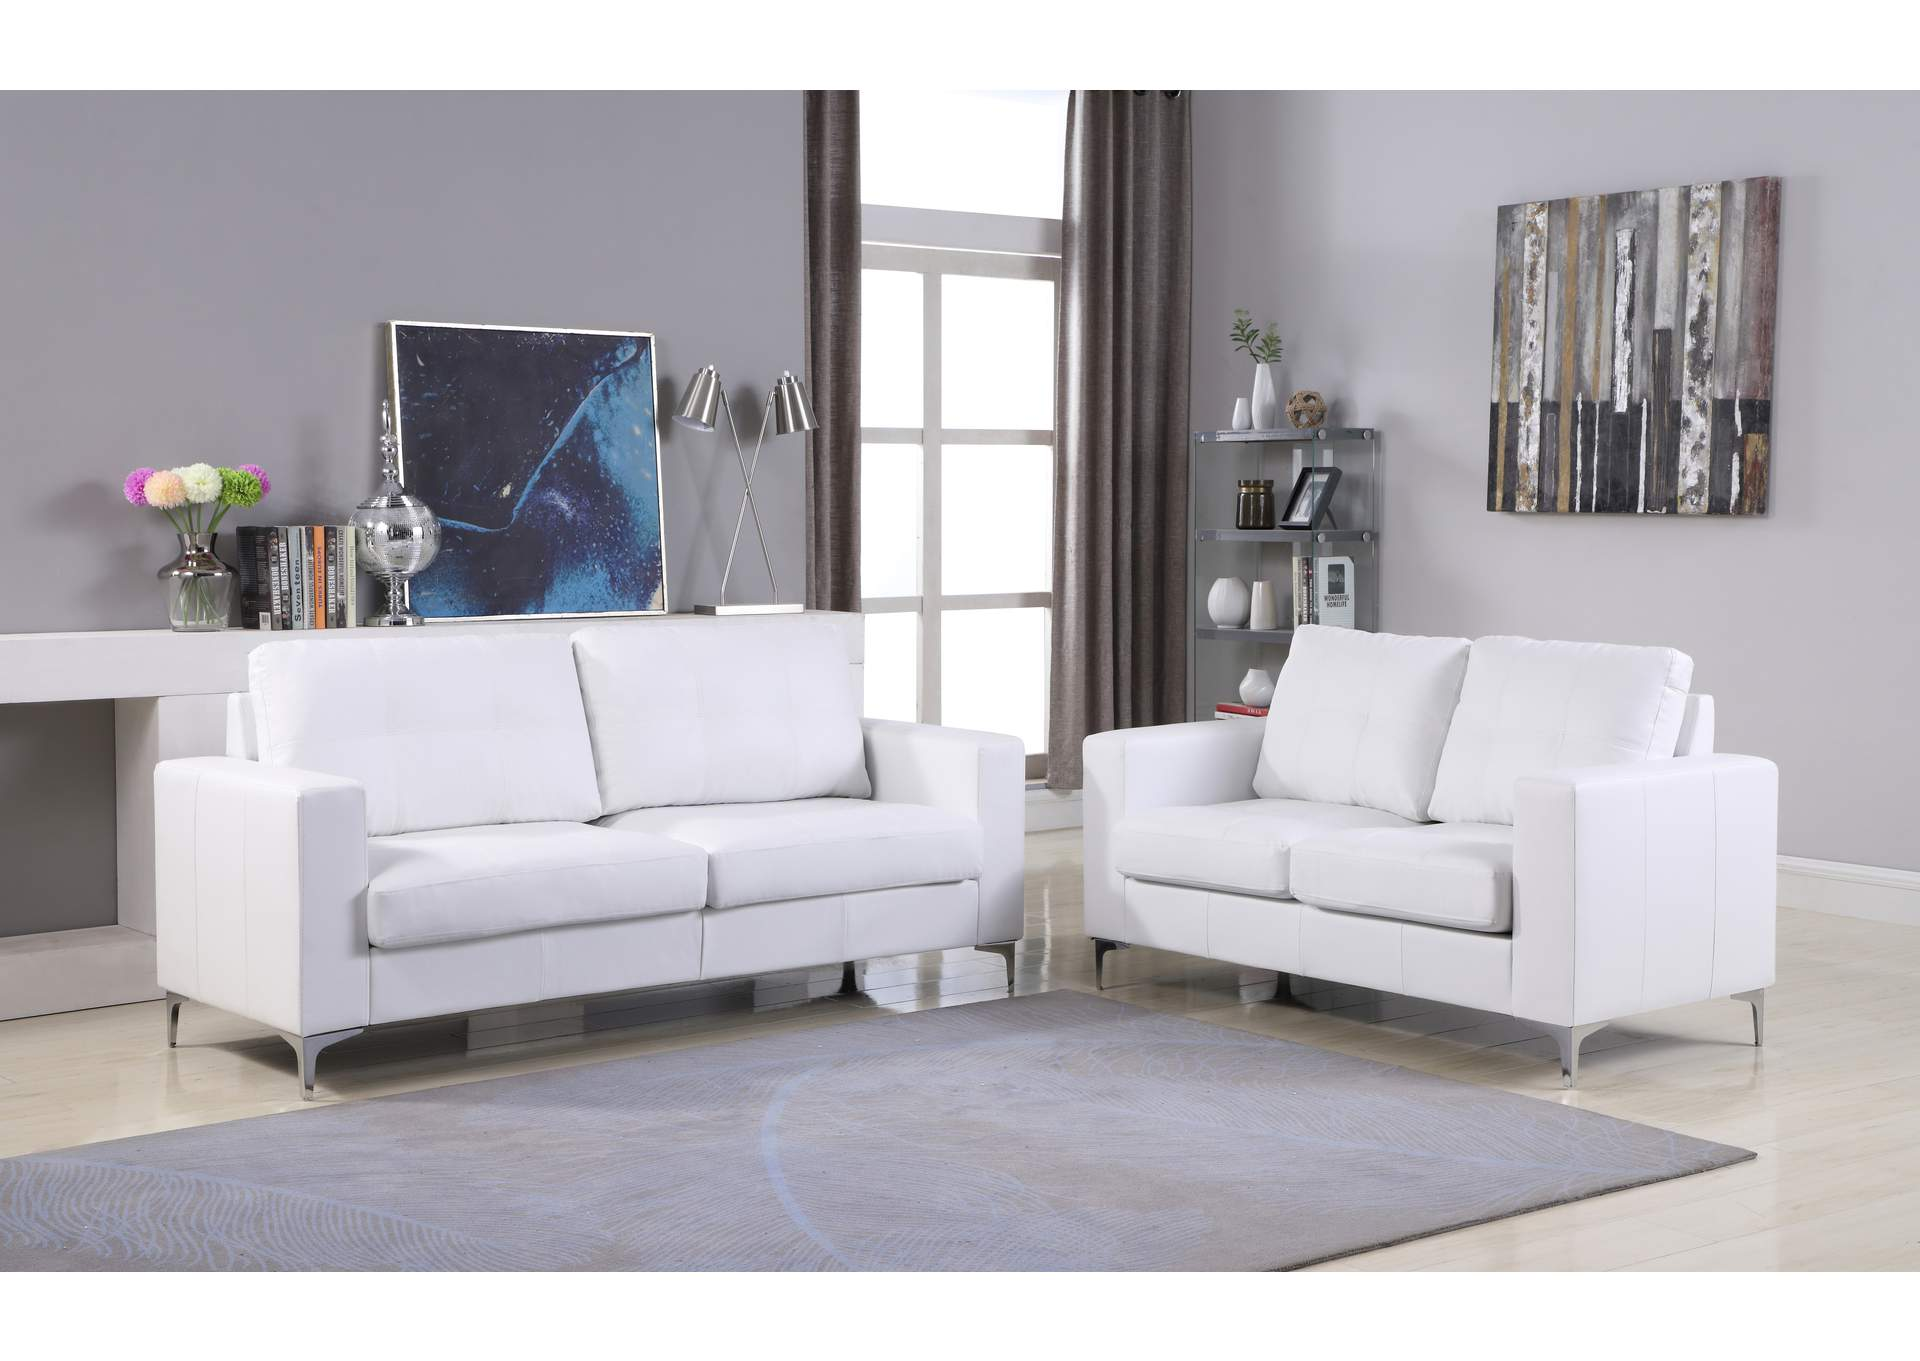 White Contemporary Leather Loveseat (White) With Chrome Leg,Global Trading